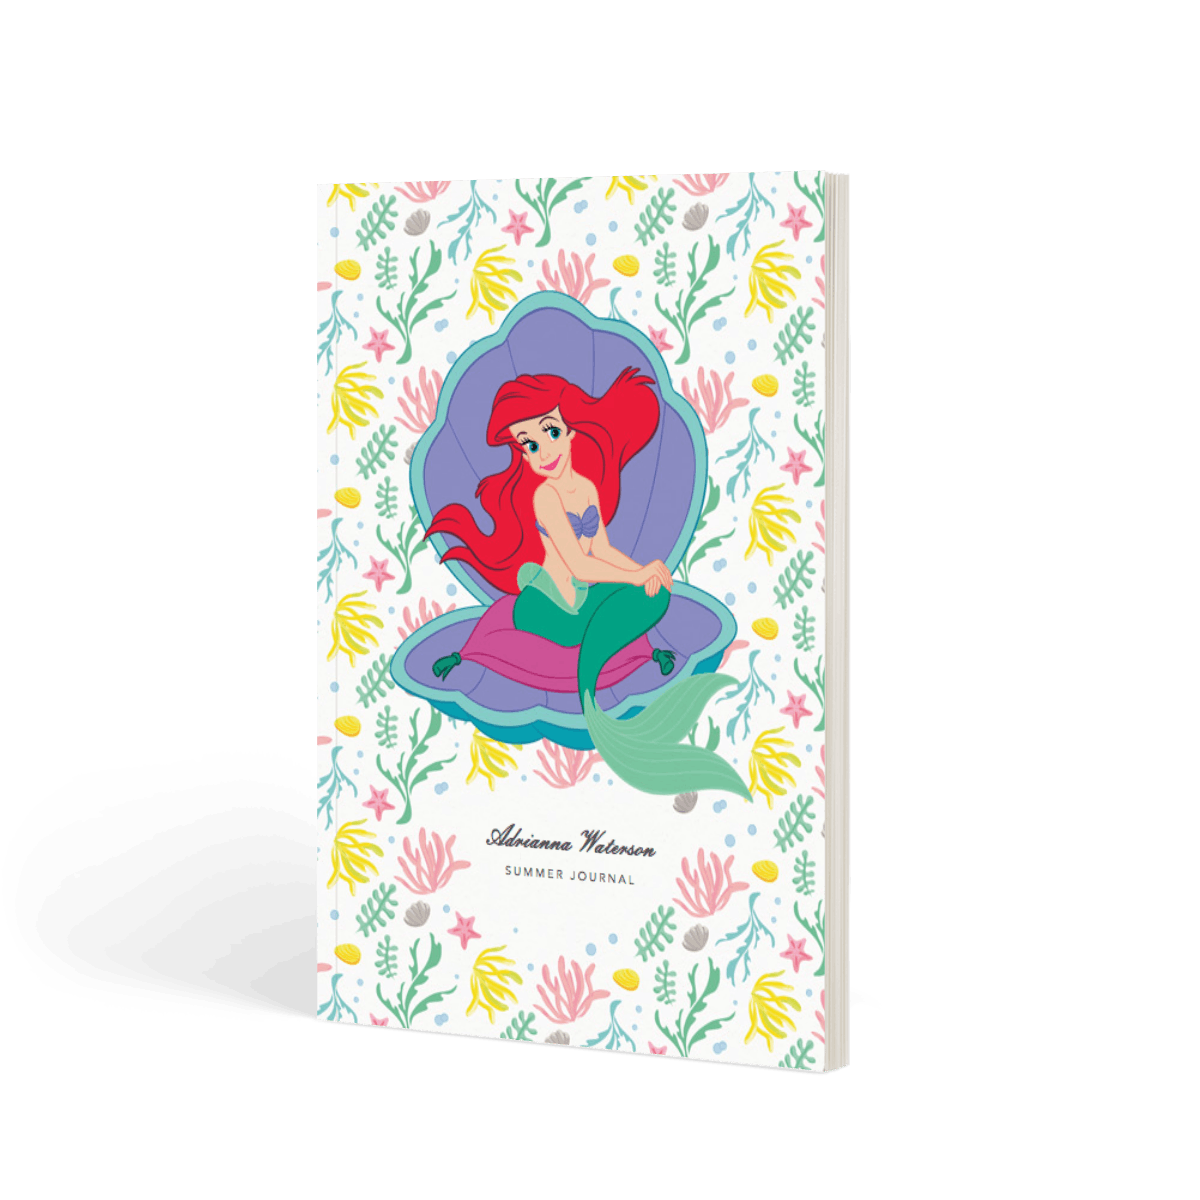 Https%3a%2f%2fwww.papier.com%2fproduct image%2f36127%2f6%2fthe little mermaid 9073 vorderseite 1523880129.png?ixlib=rb 1.1